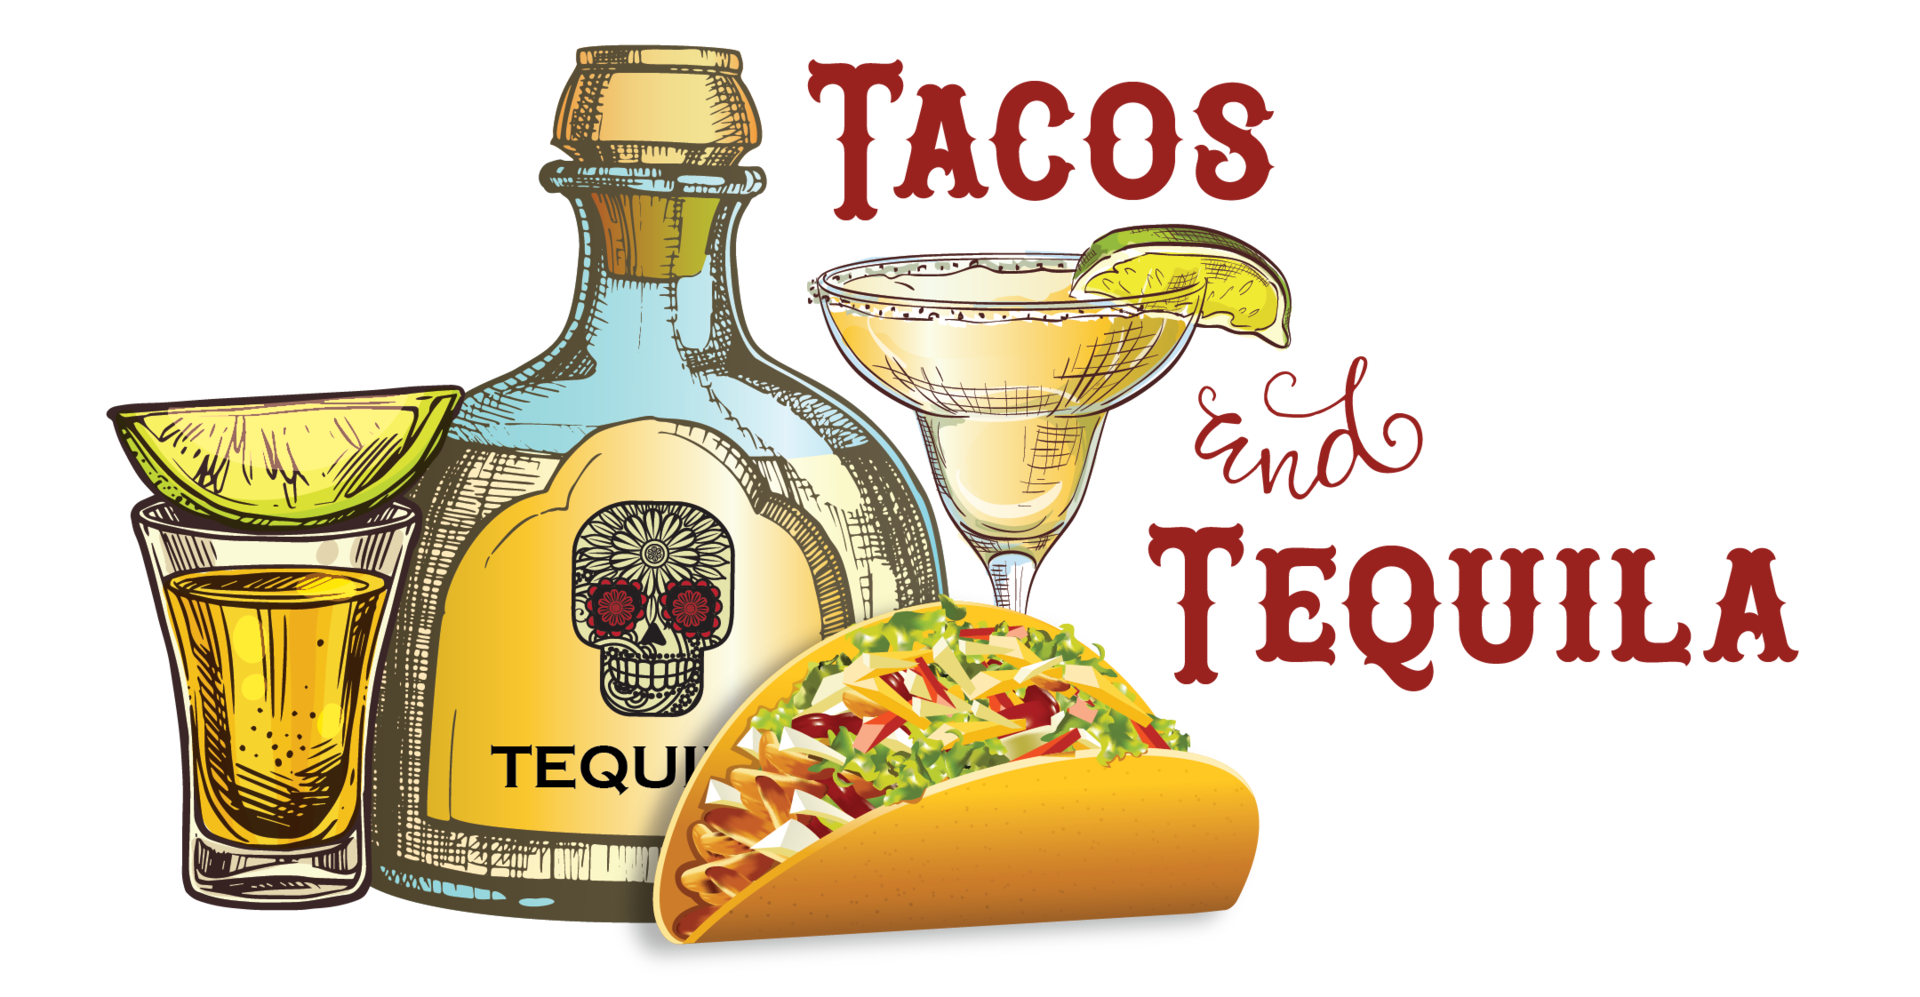 Tacos & Tequila - Tacos & Tequila